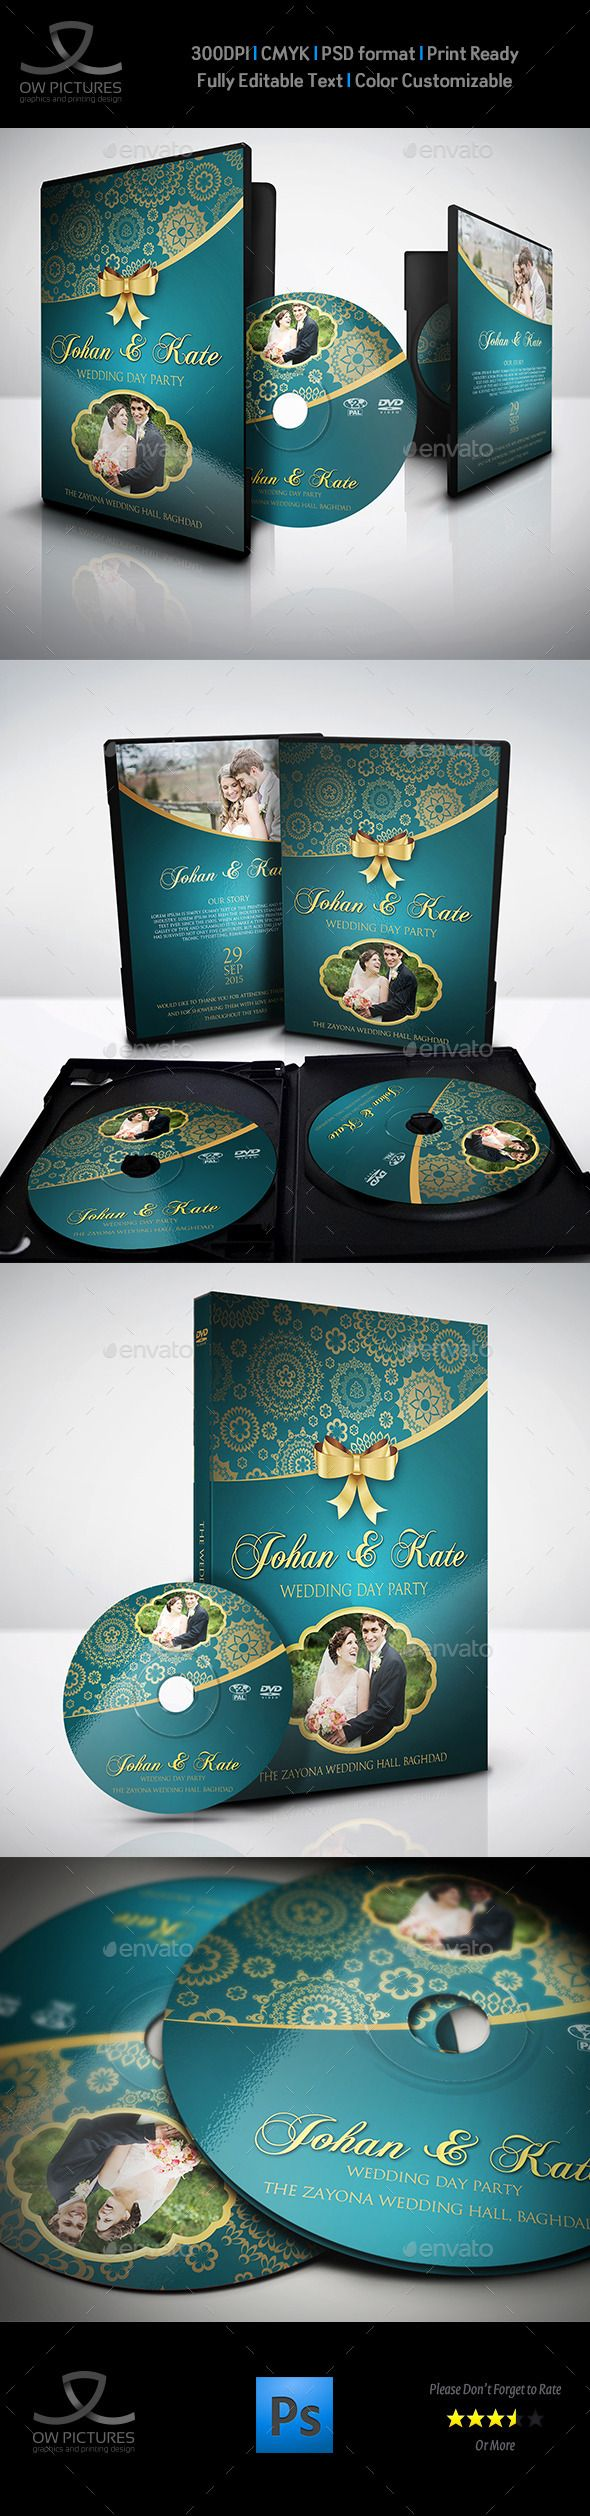 the 13 best images about dvd cover on pinterest | canon, classy, Powerpoint templates